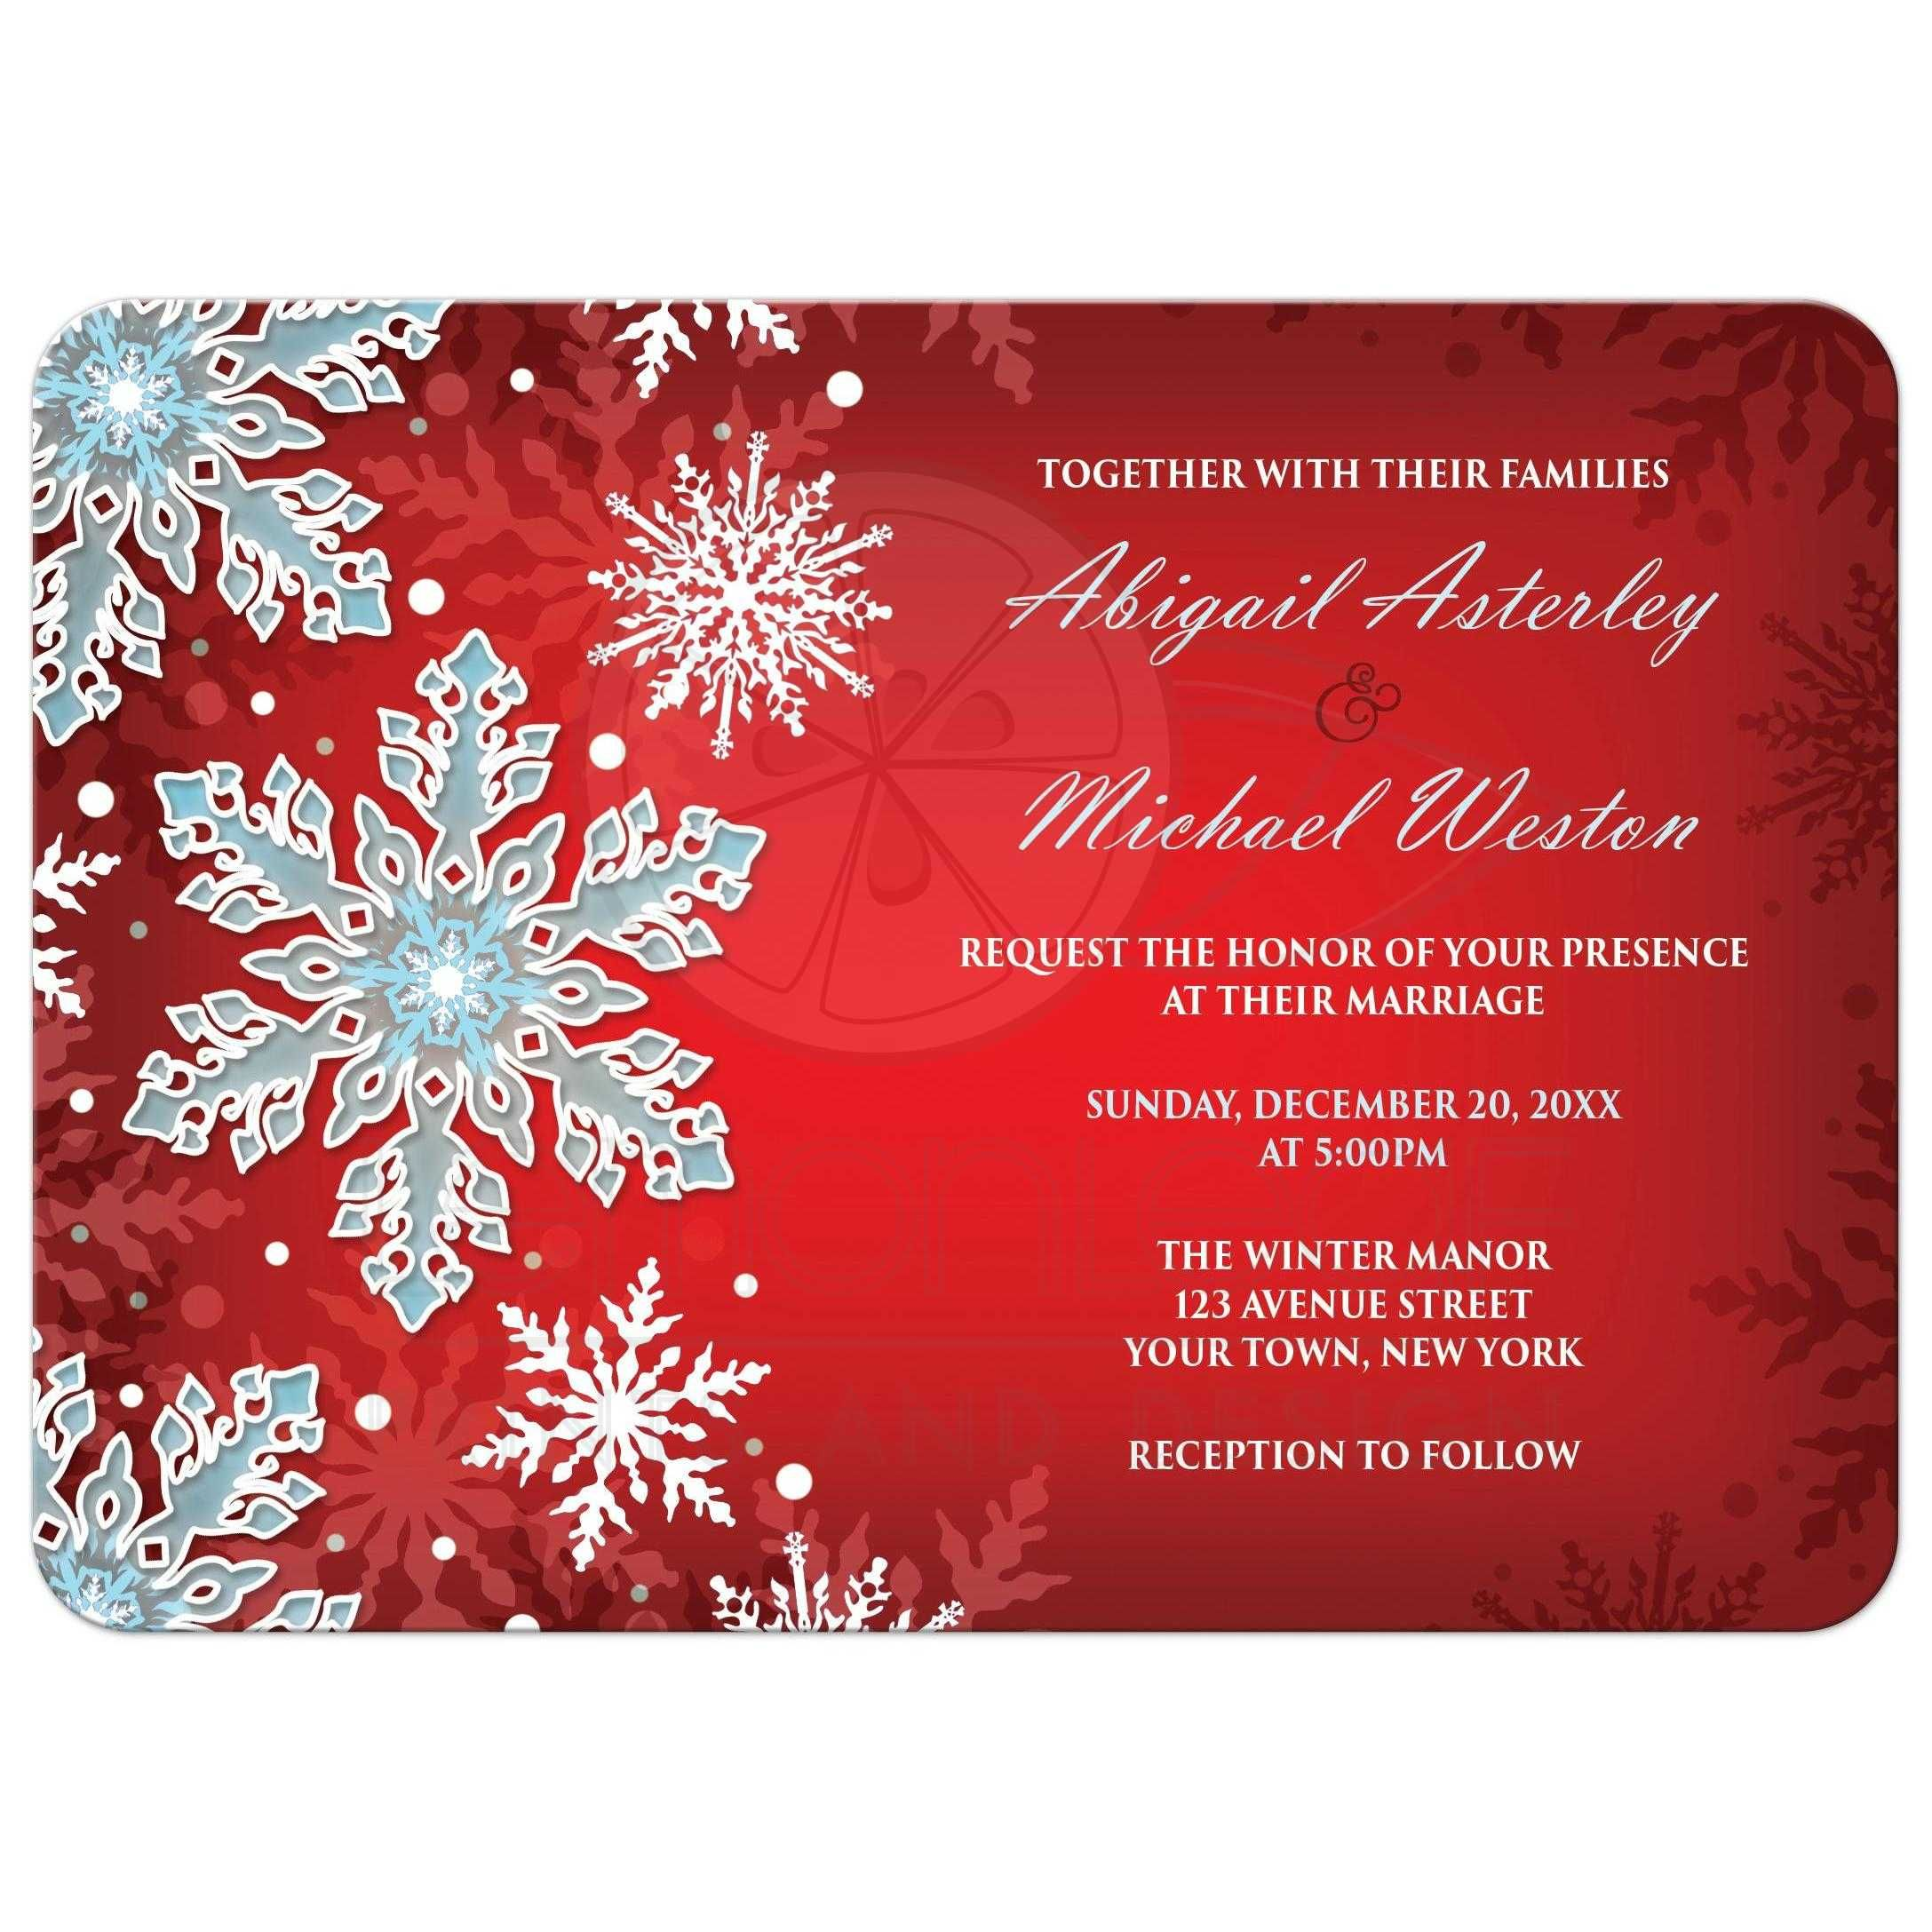 Wedding Invitations - Royal Red White Blue Snowflake | Royal red ...